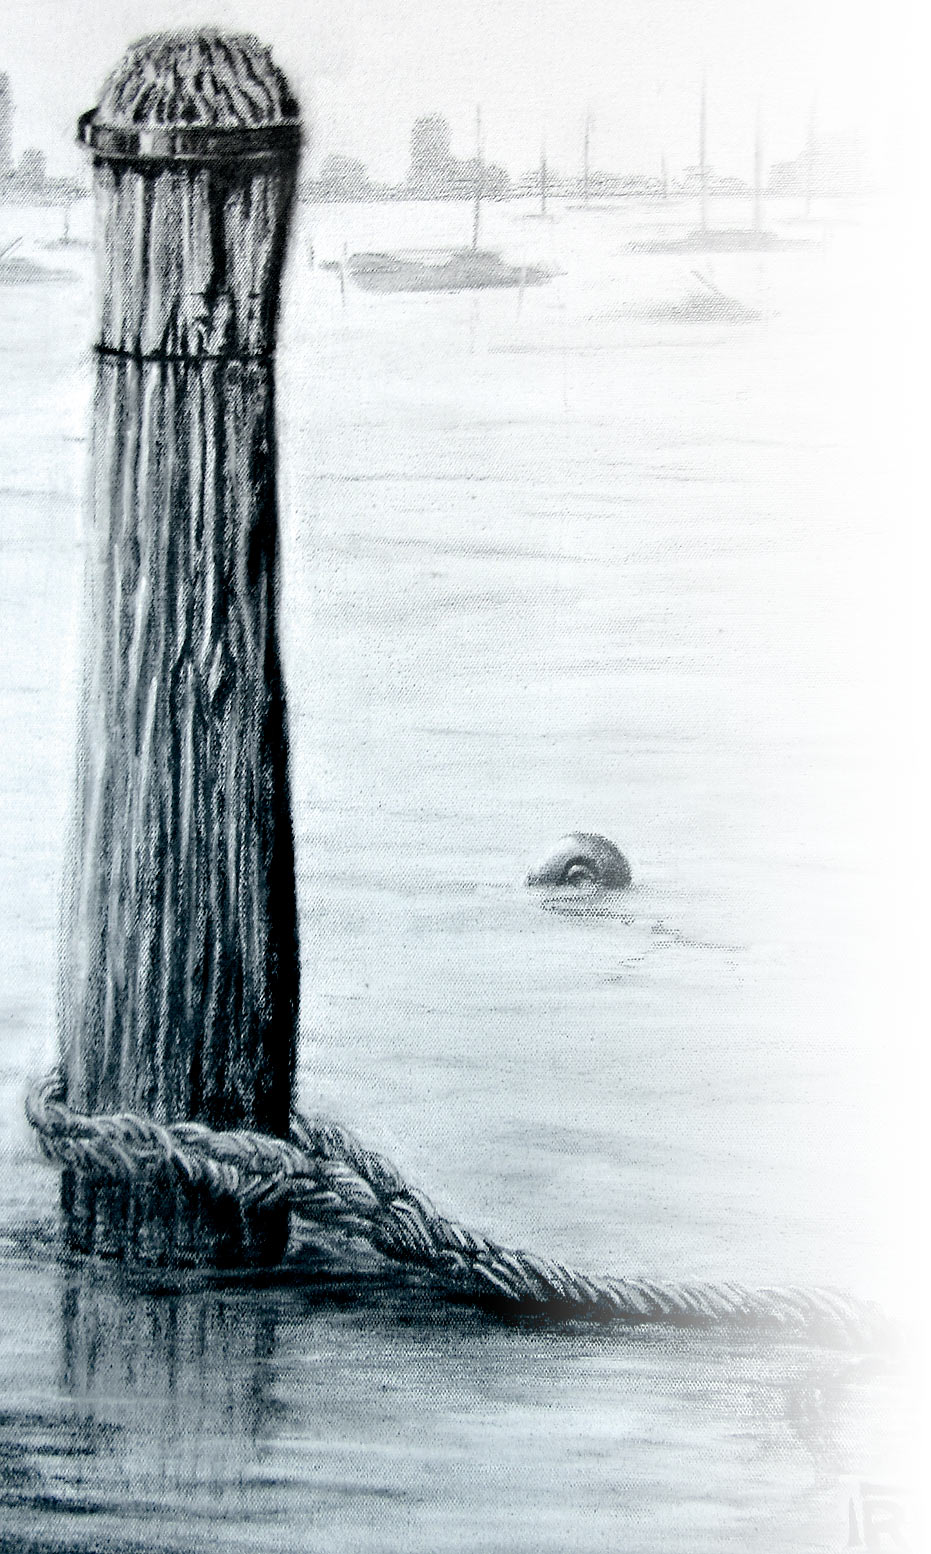 Graphite drawing of bollard and rope in the water, by Ruth Quinn, tinted blue-green